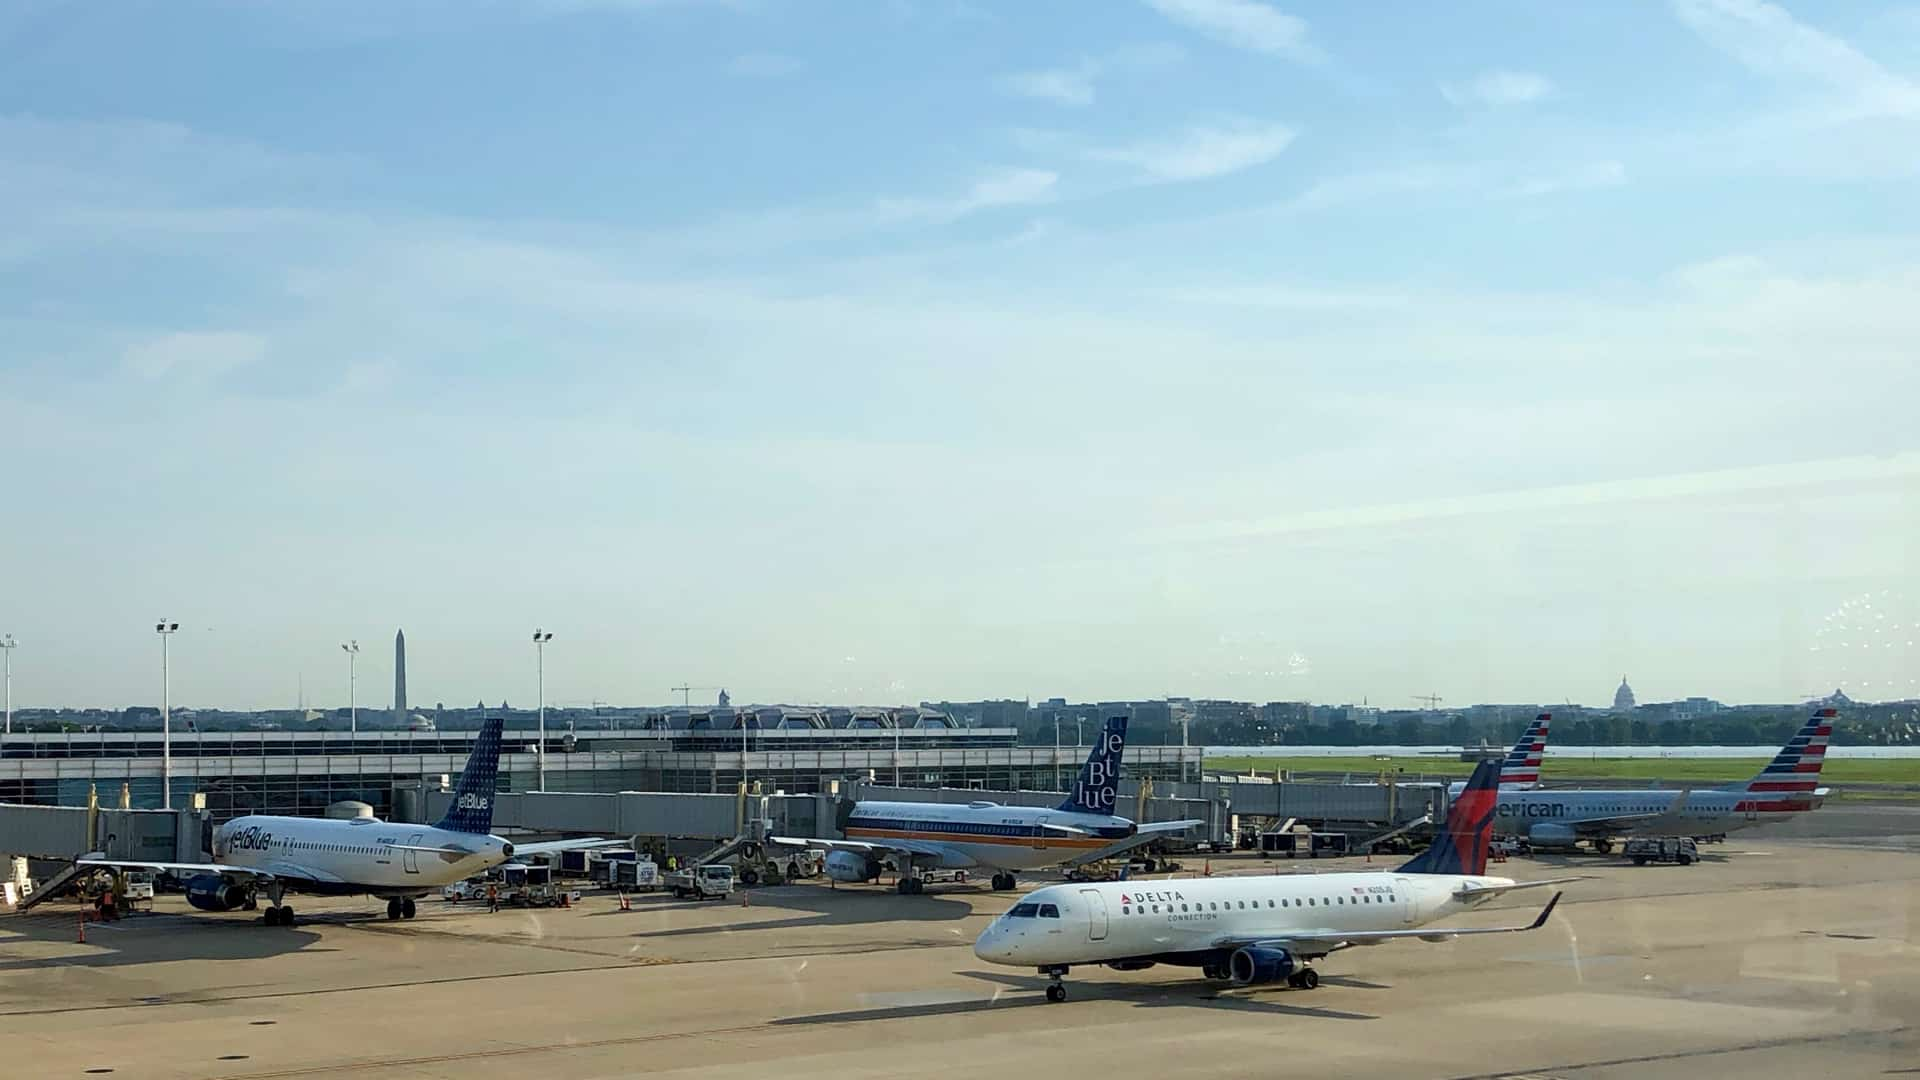 Washington DC skyline as seen from Reagan National Airport (DCA)